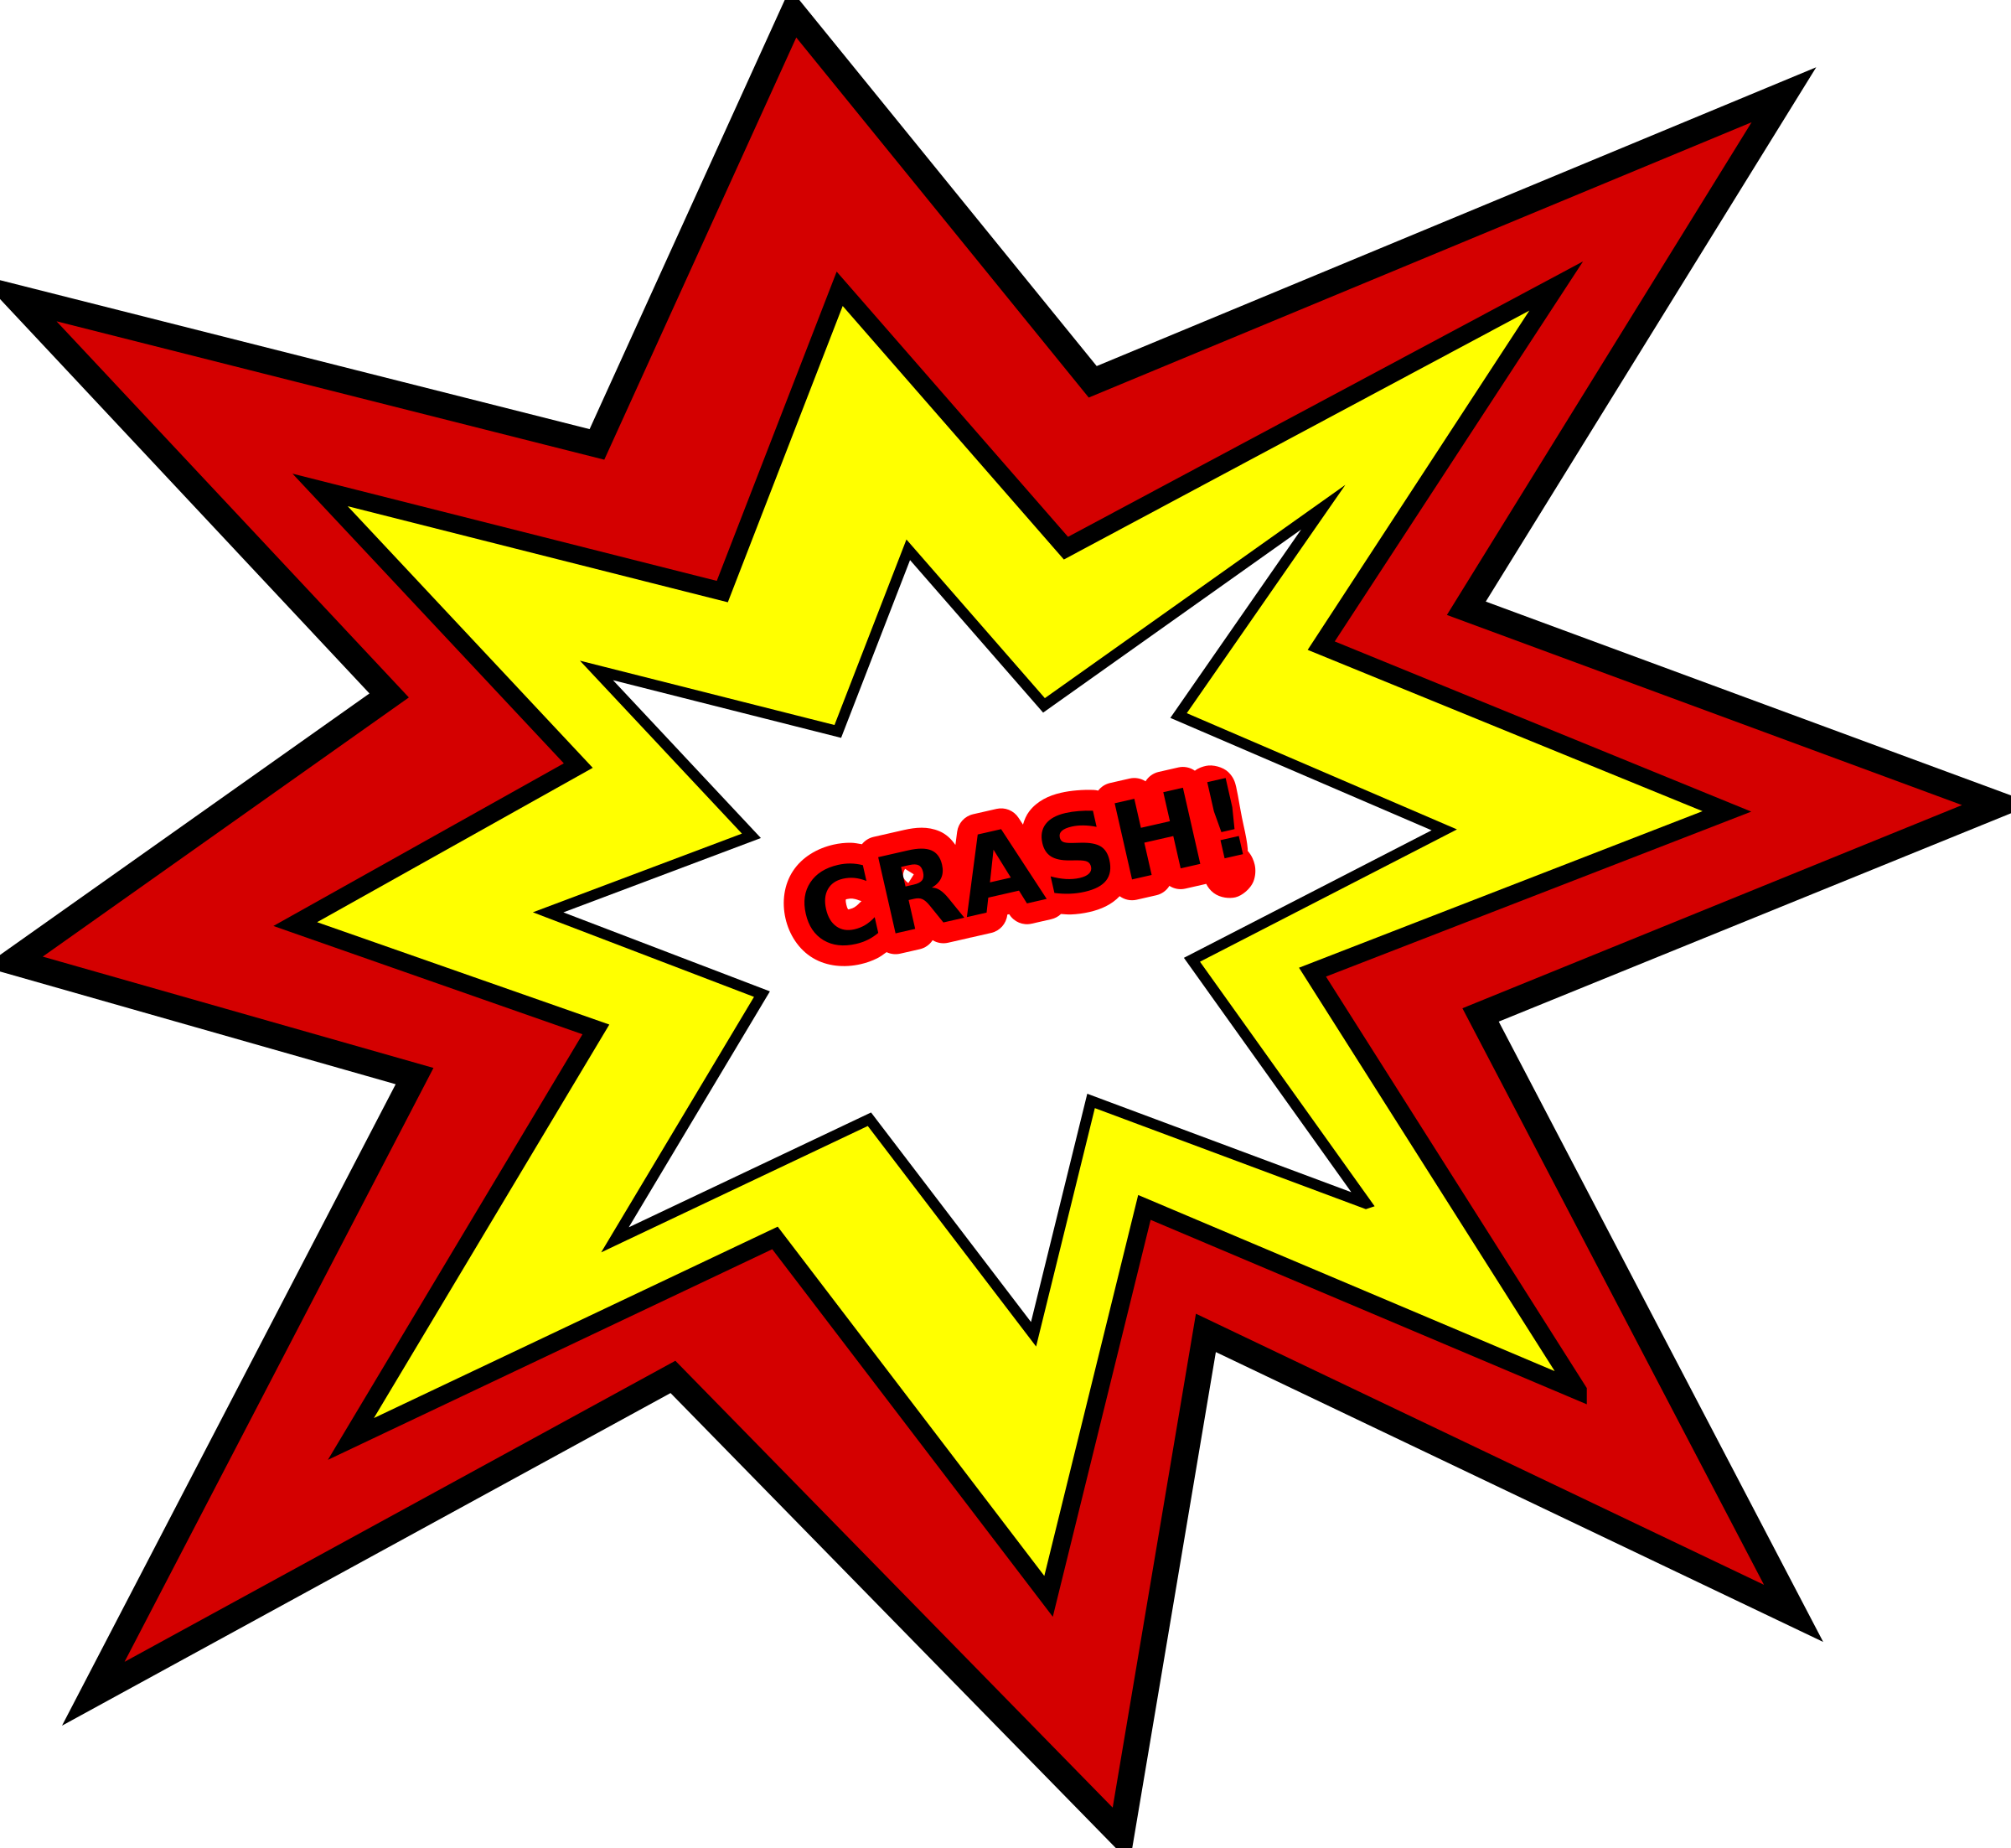 Car accidnet clipart png freeuse library 28+ Collection of Crash Clipart | High quality, free cliparts ... png freeuse library